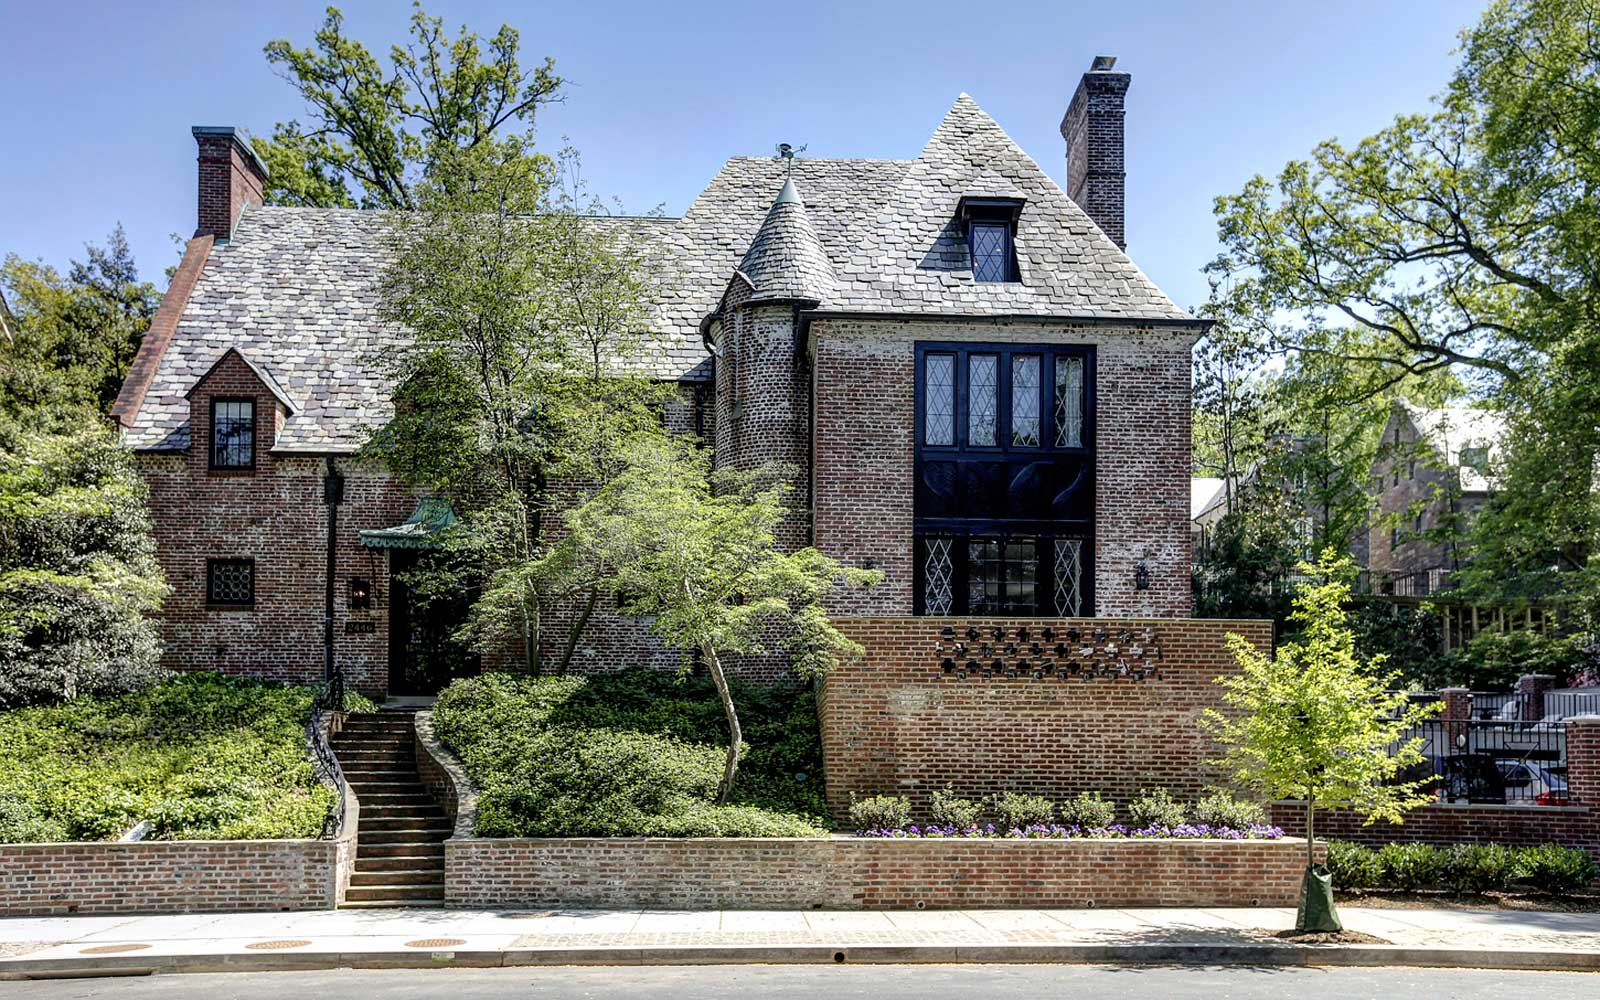 The Obamas just bought this D.C. house for $8.1 million